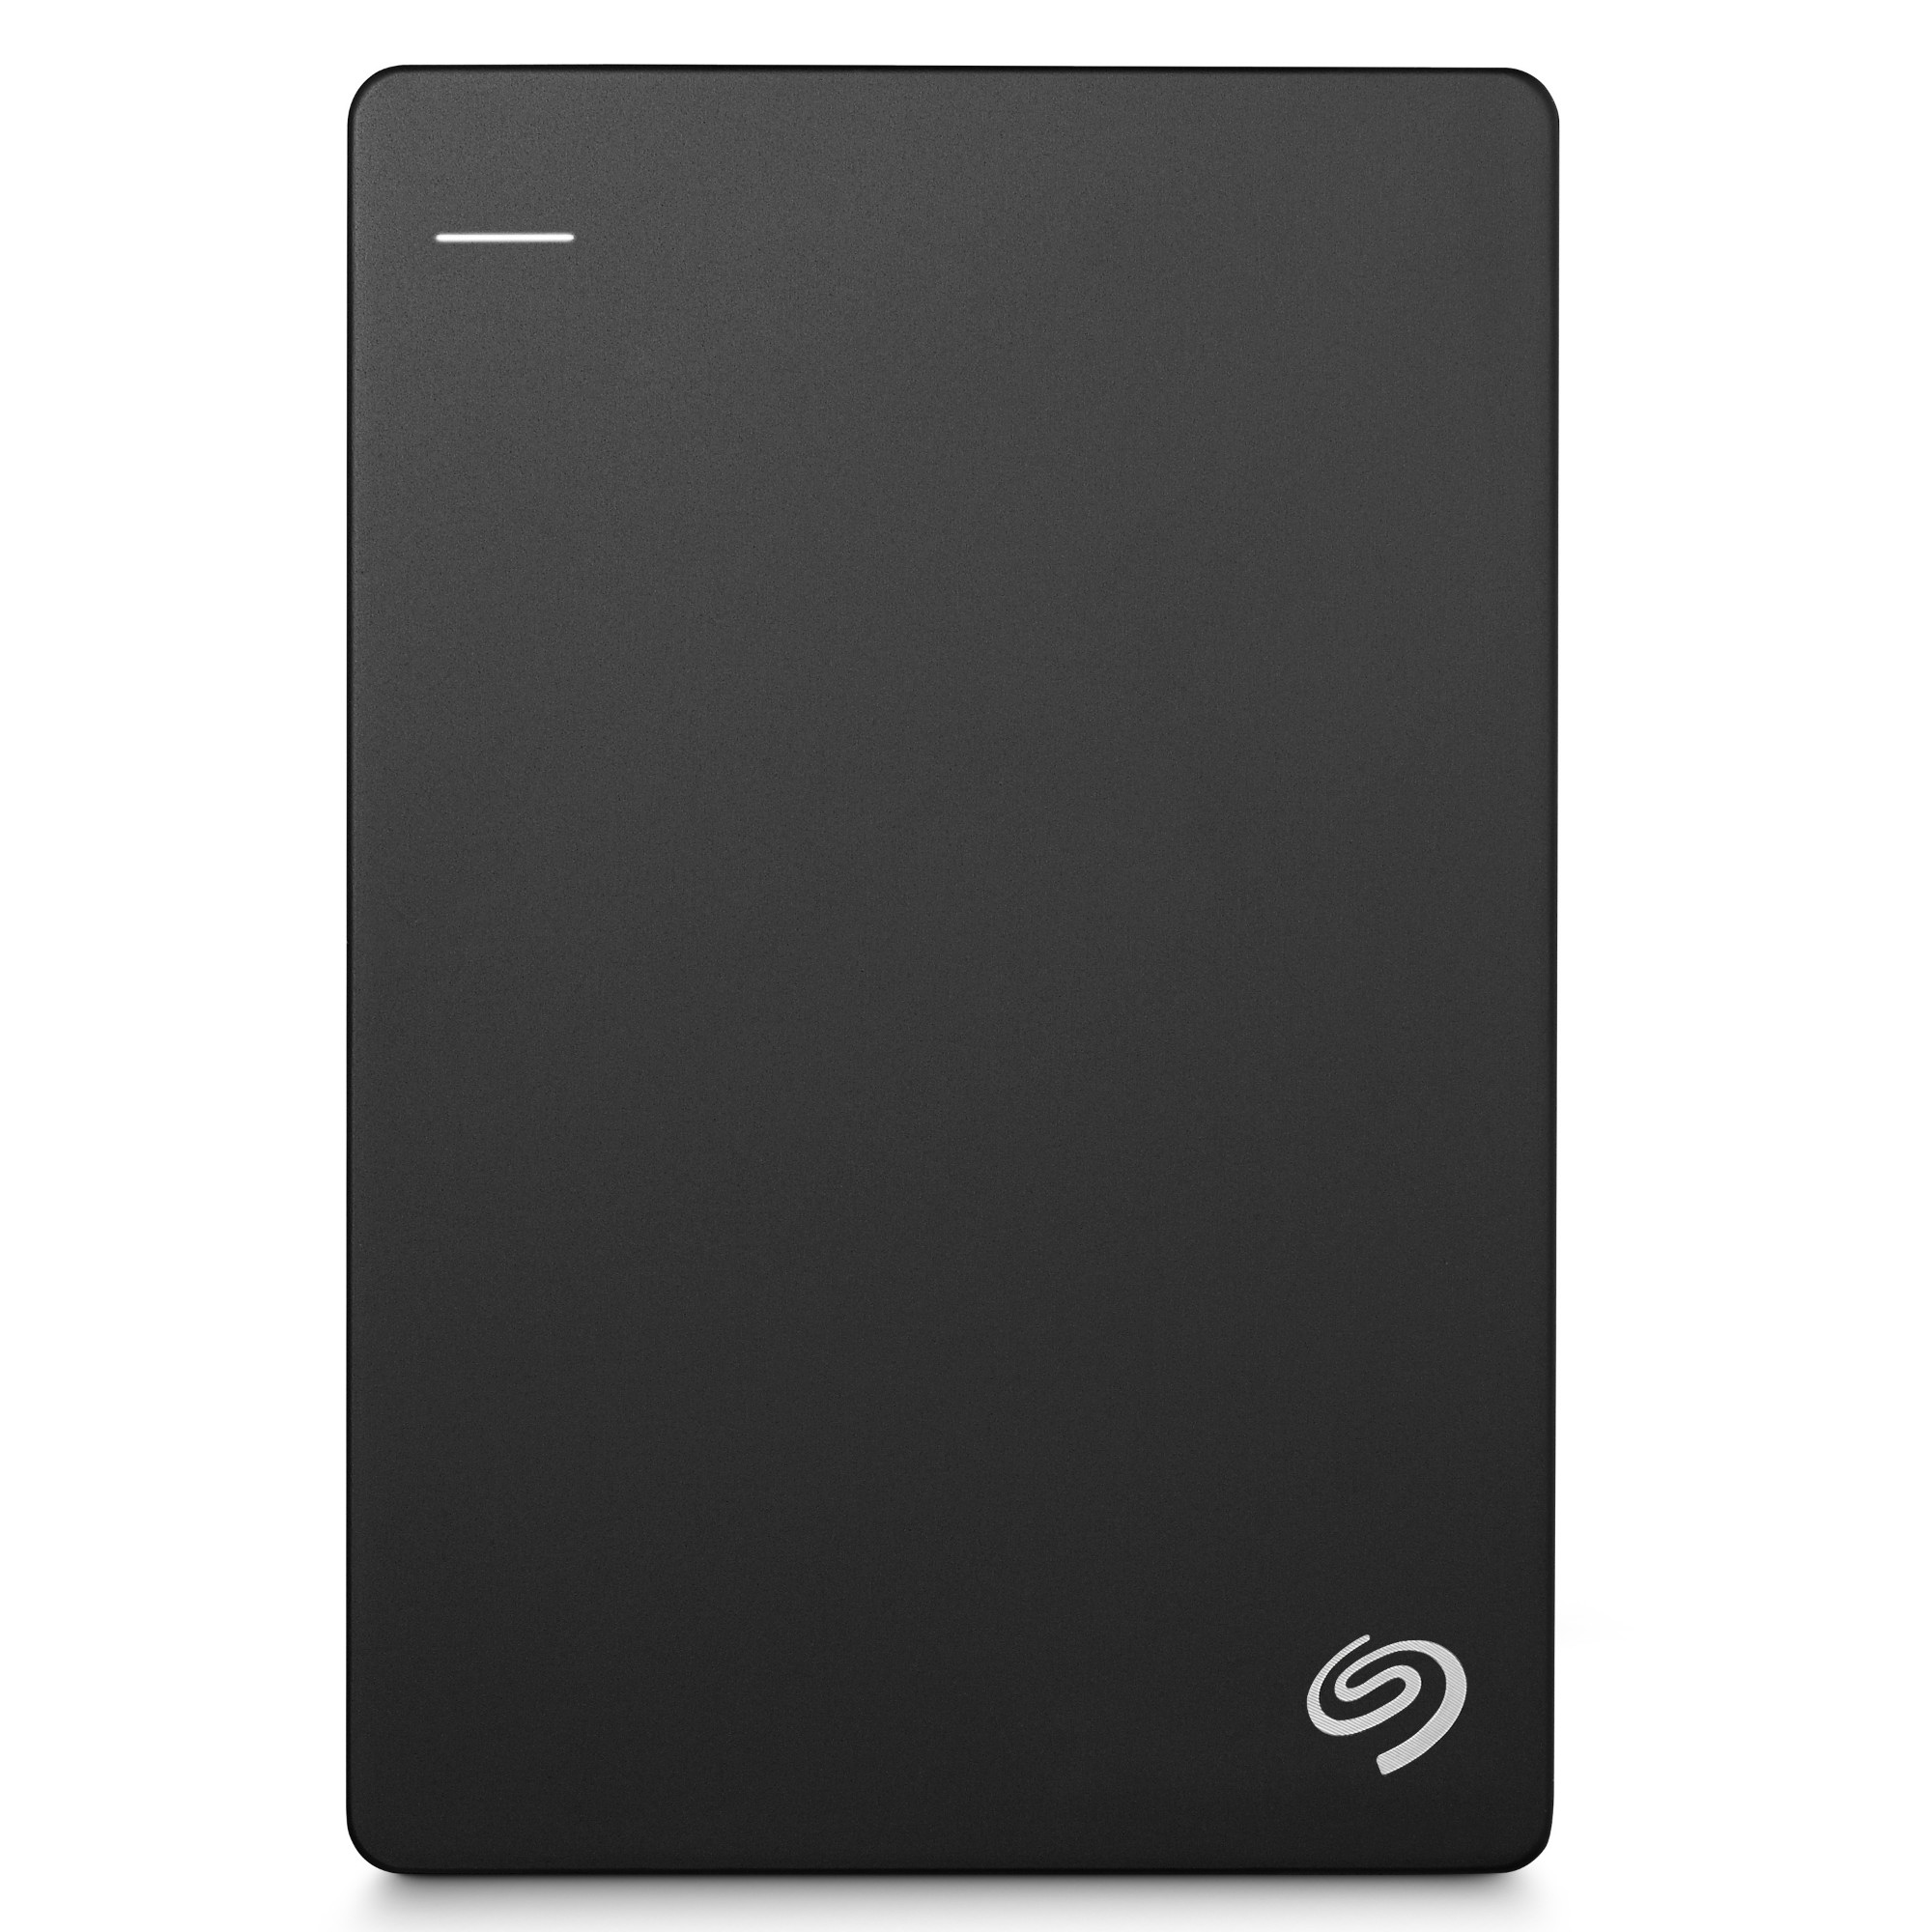 Seagate Backup Plus Slim 2000GB Black external hard drive